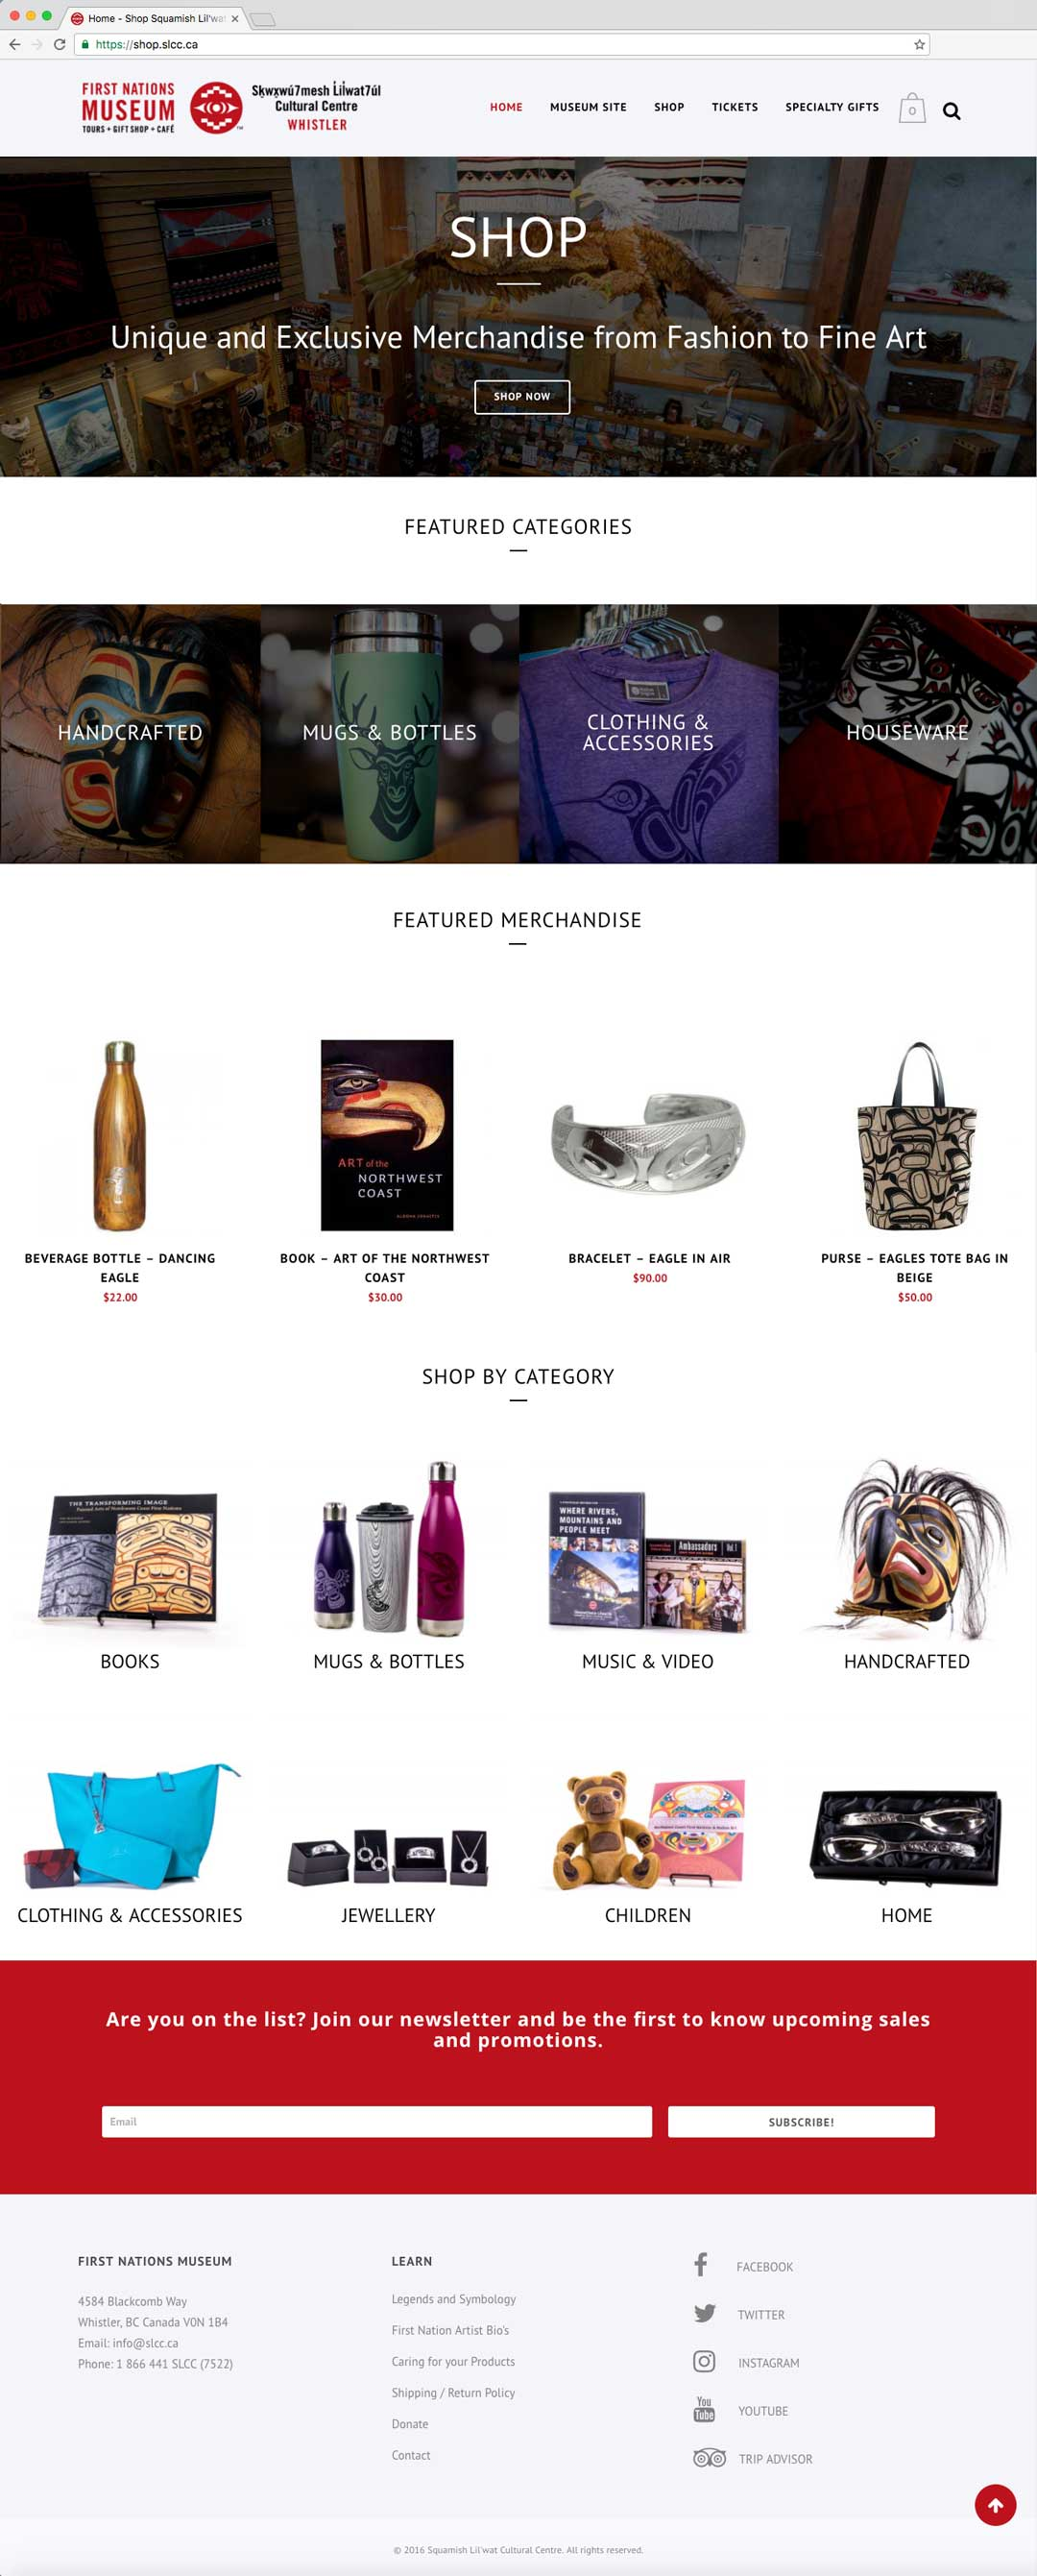 SLCC Home Shop Page, Designed by Tech-Web Canada